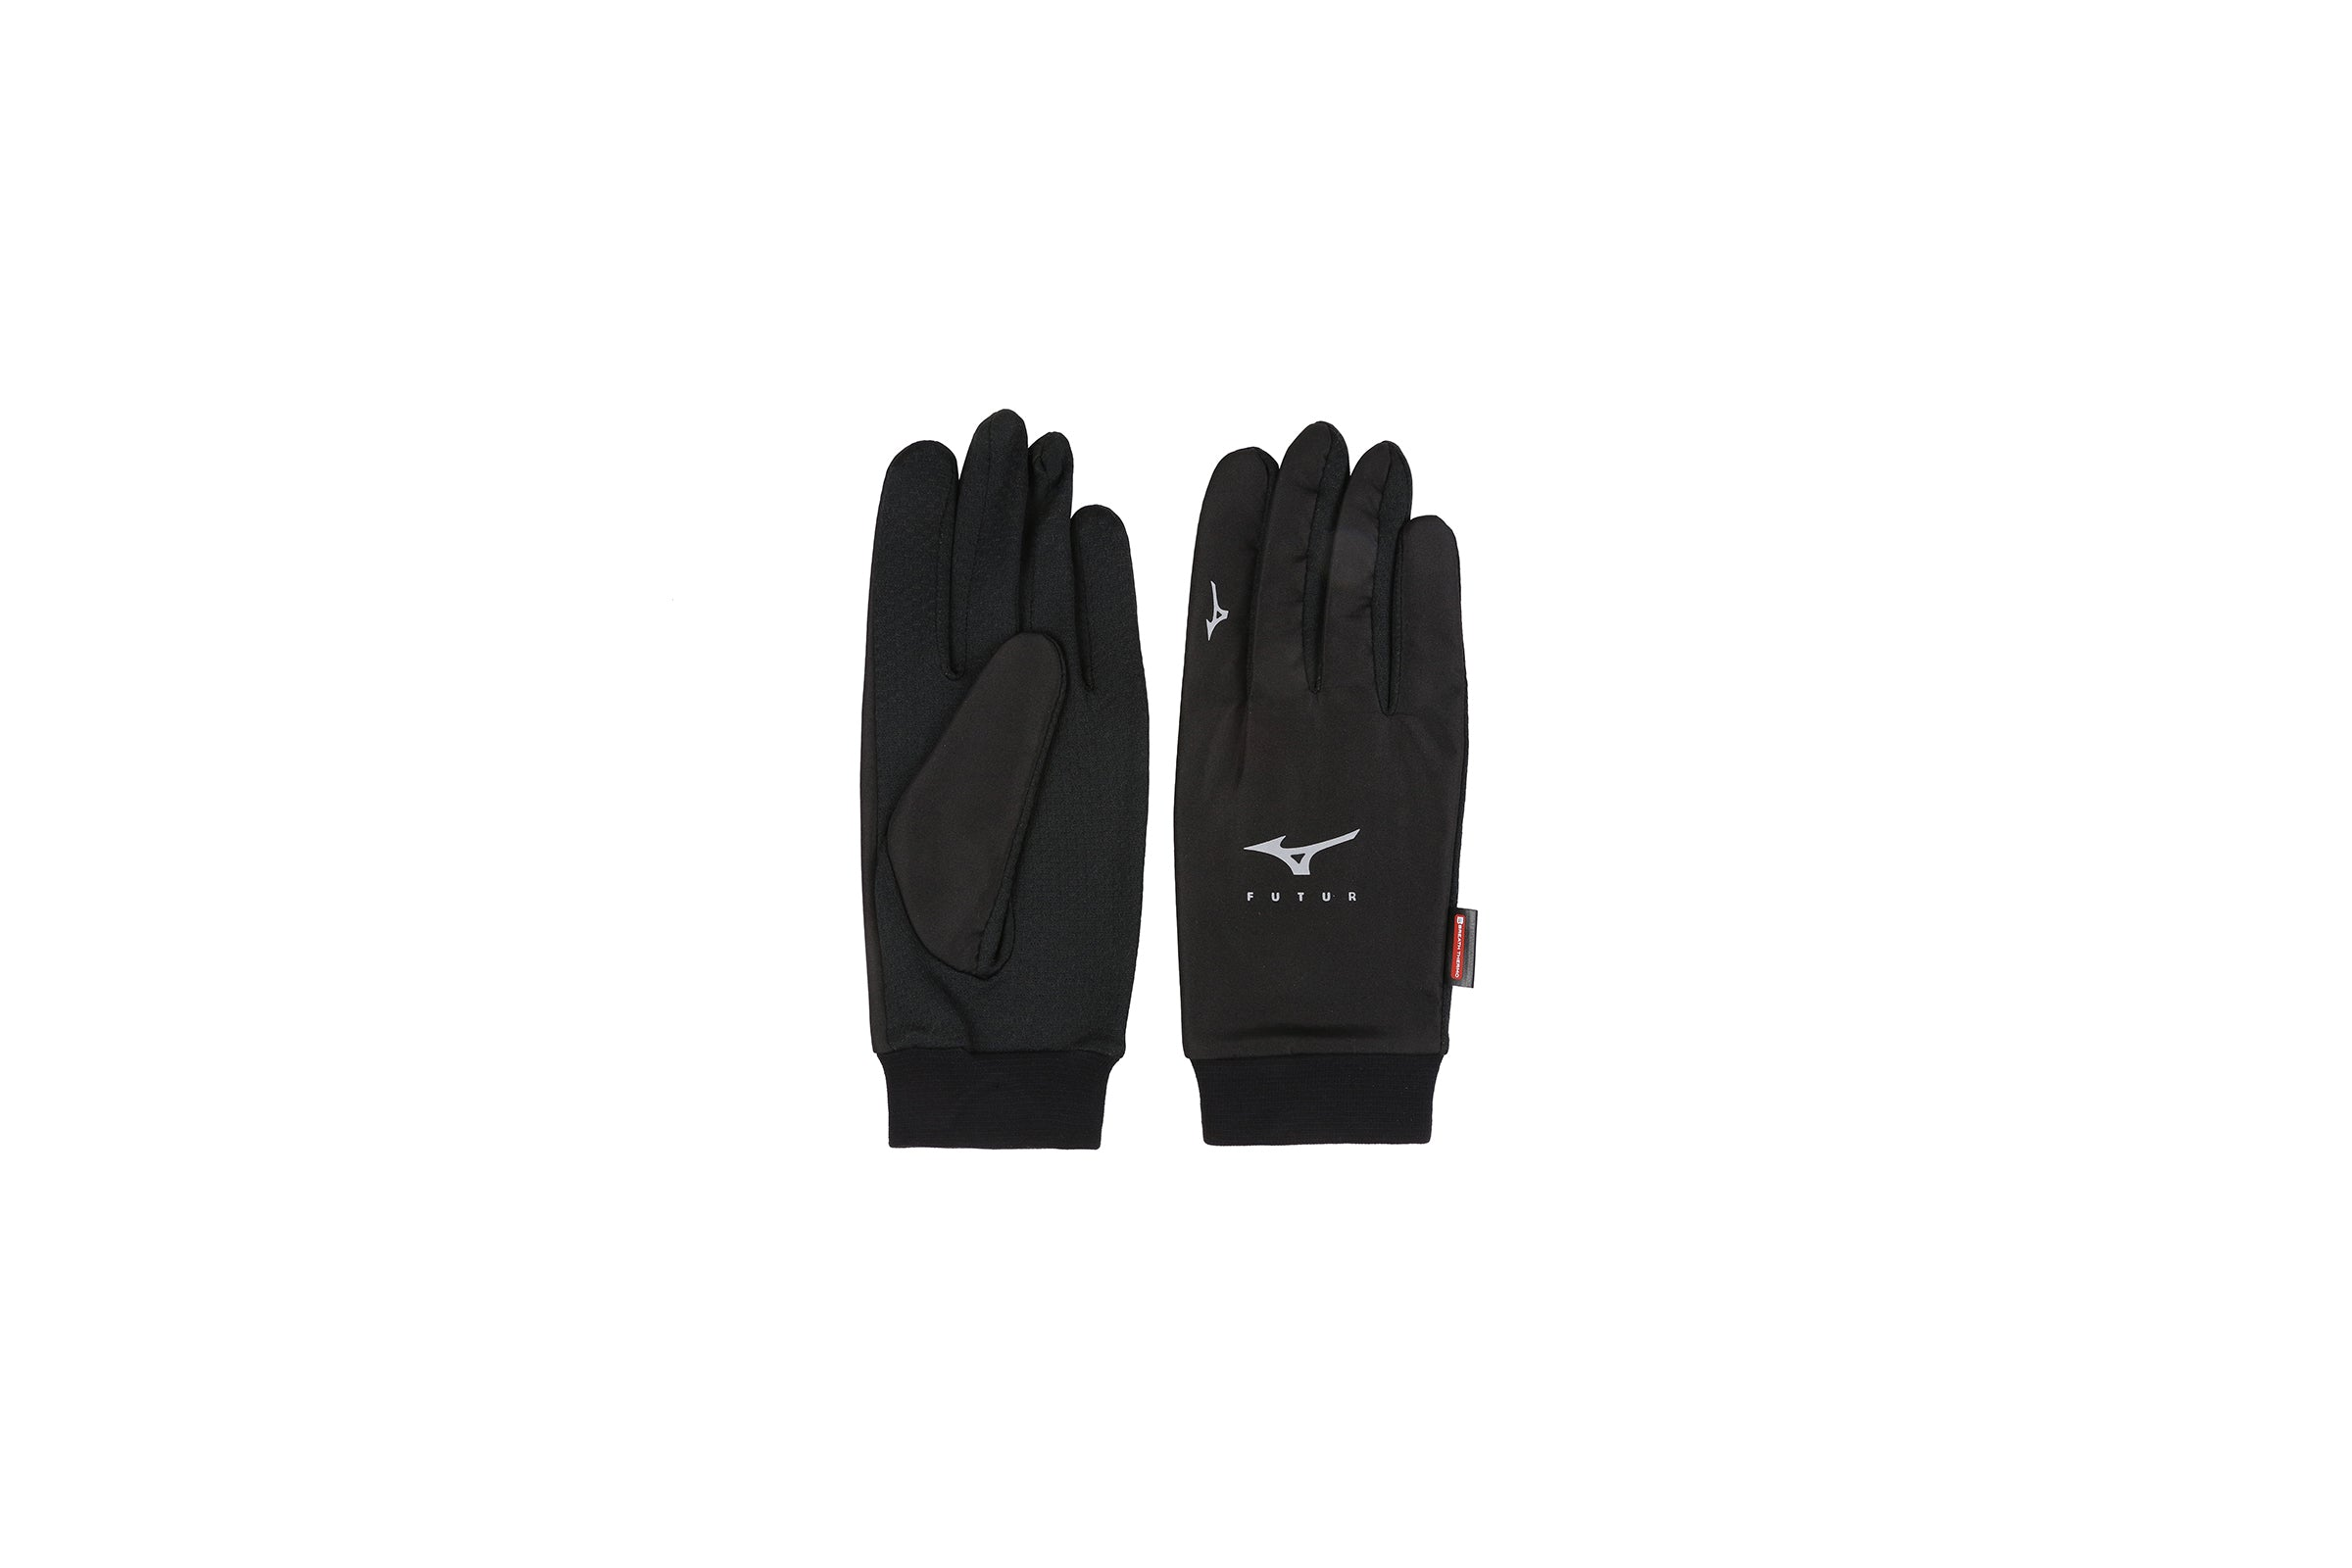 Mizuno Wind Guard Glove x Futur